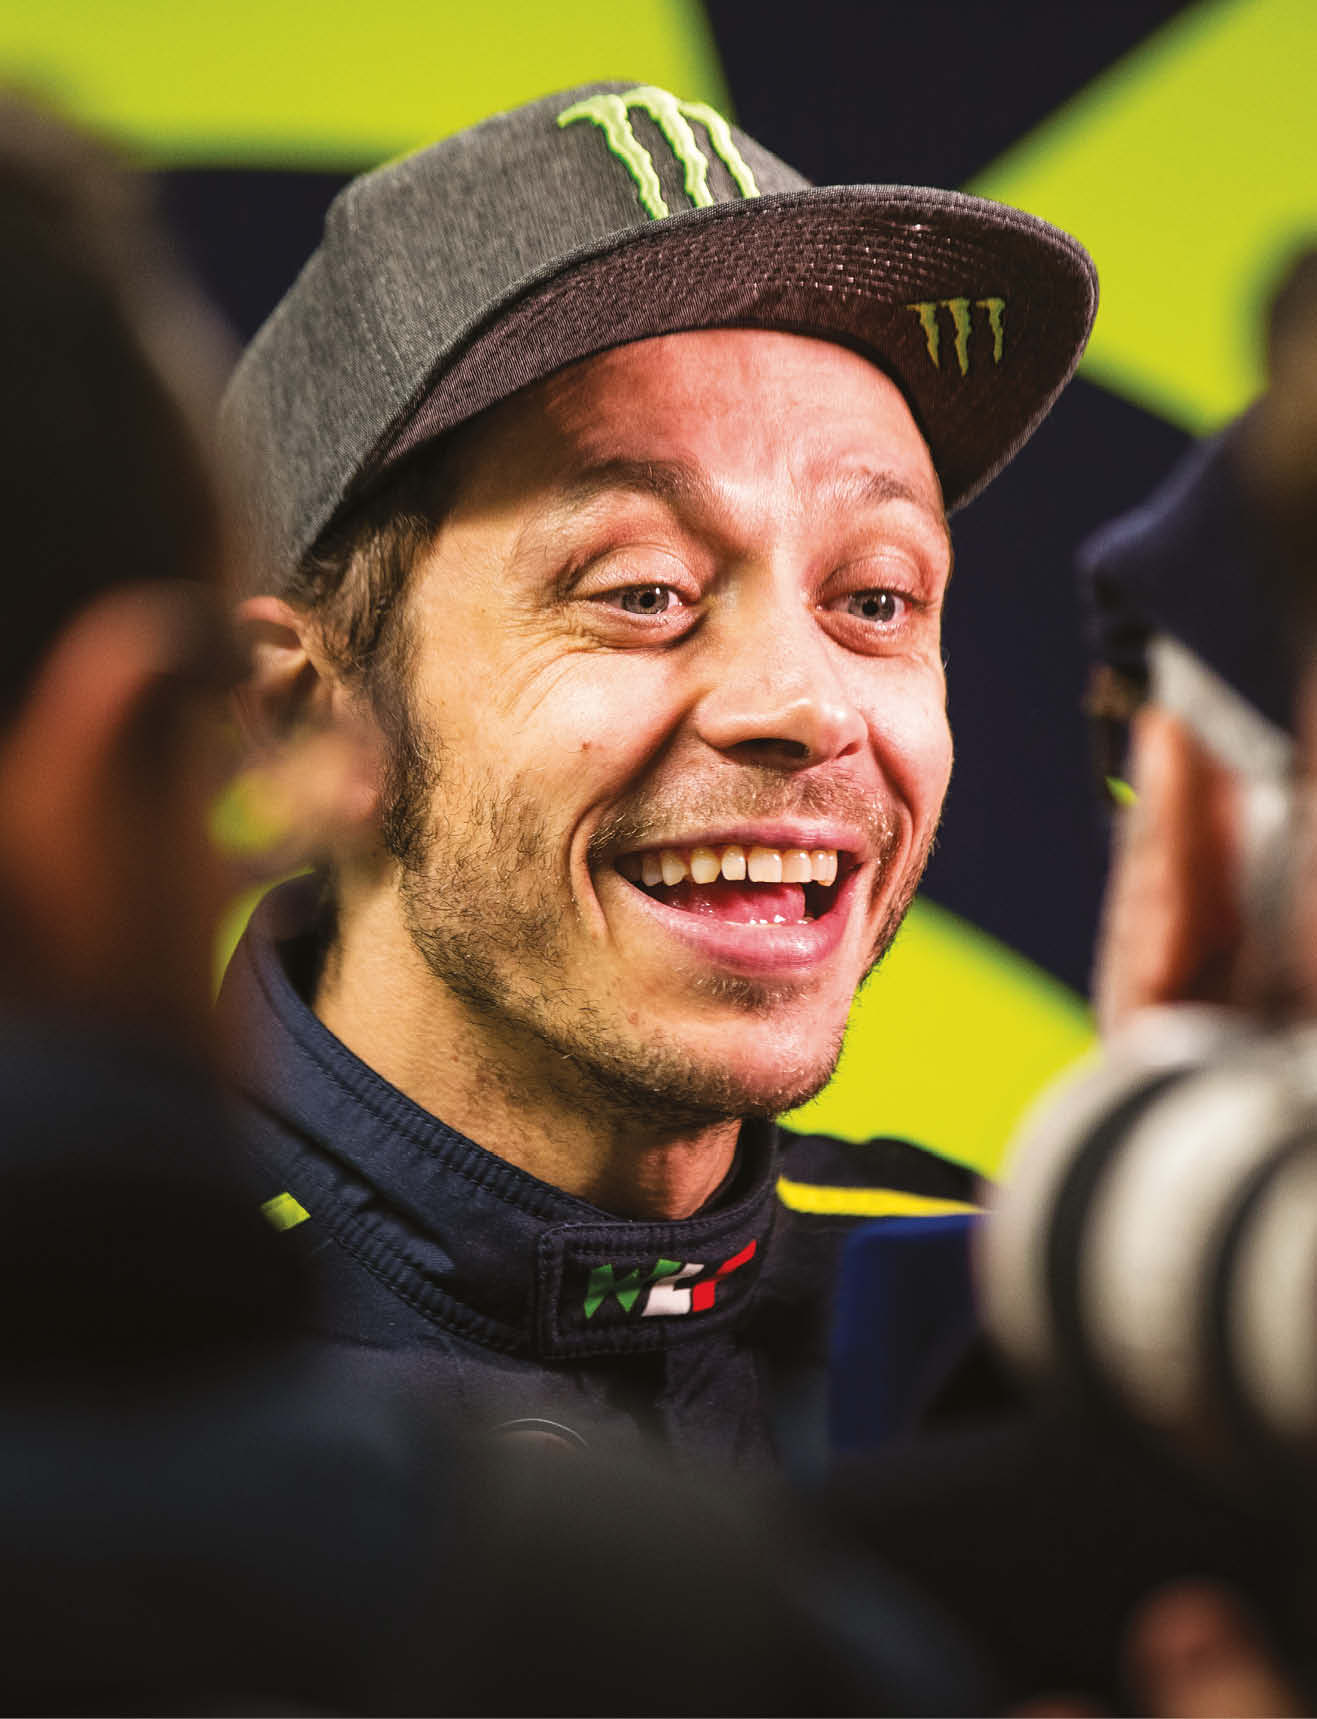 Rossi, who turns 40 this month, has claimed a staggering nine world titles in three different classes